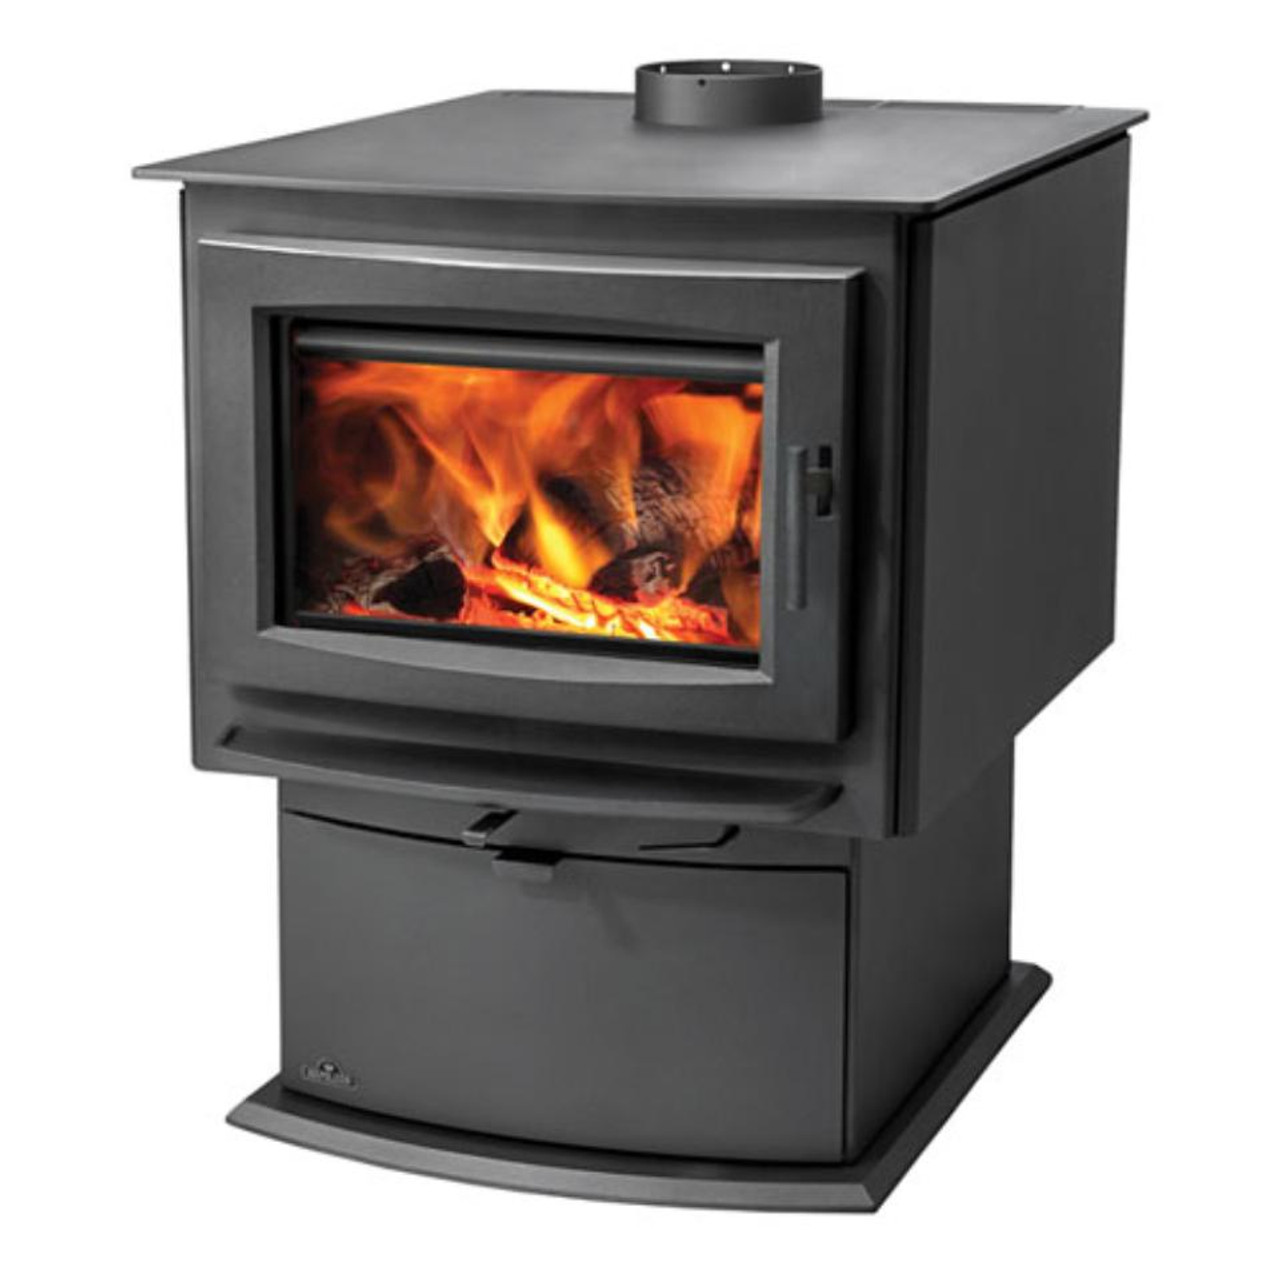 gas b fireplace wood fireplaces home en stoves products blower regency heater inserts